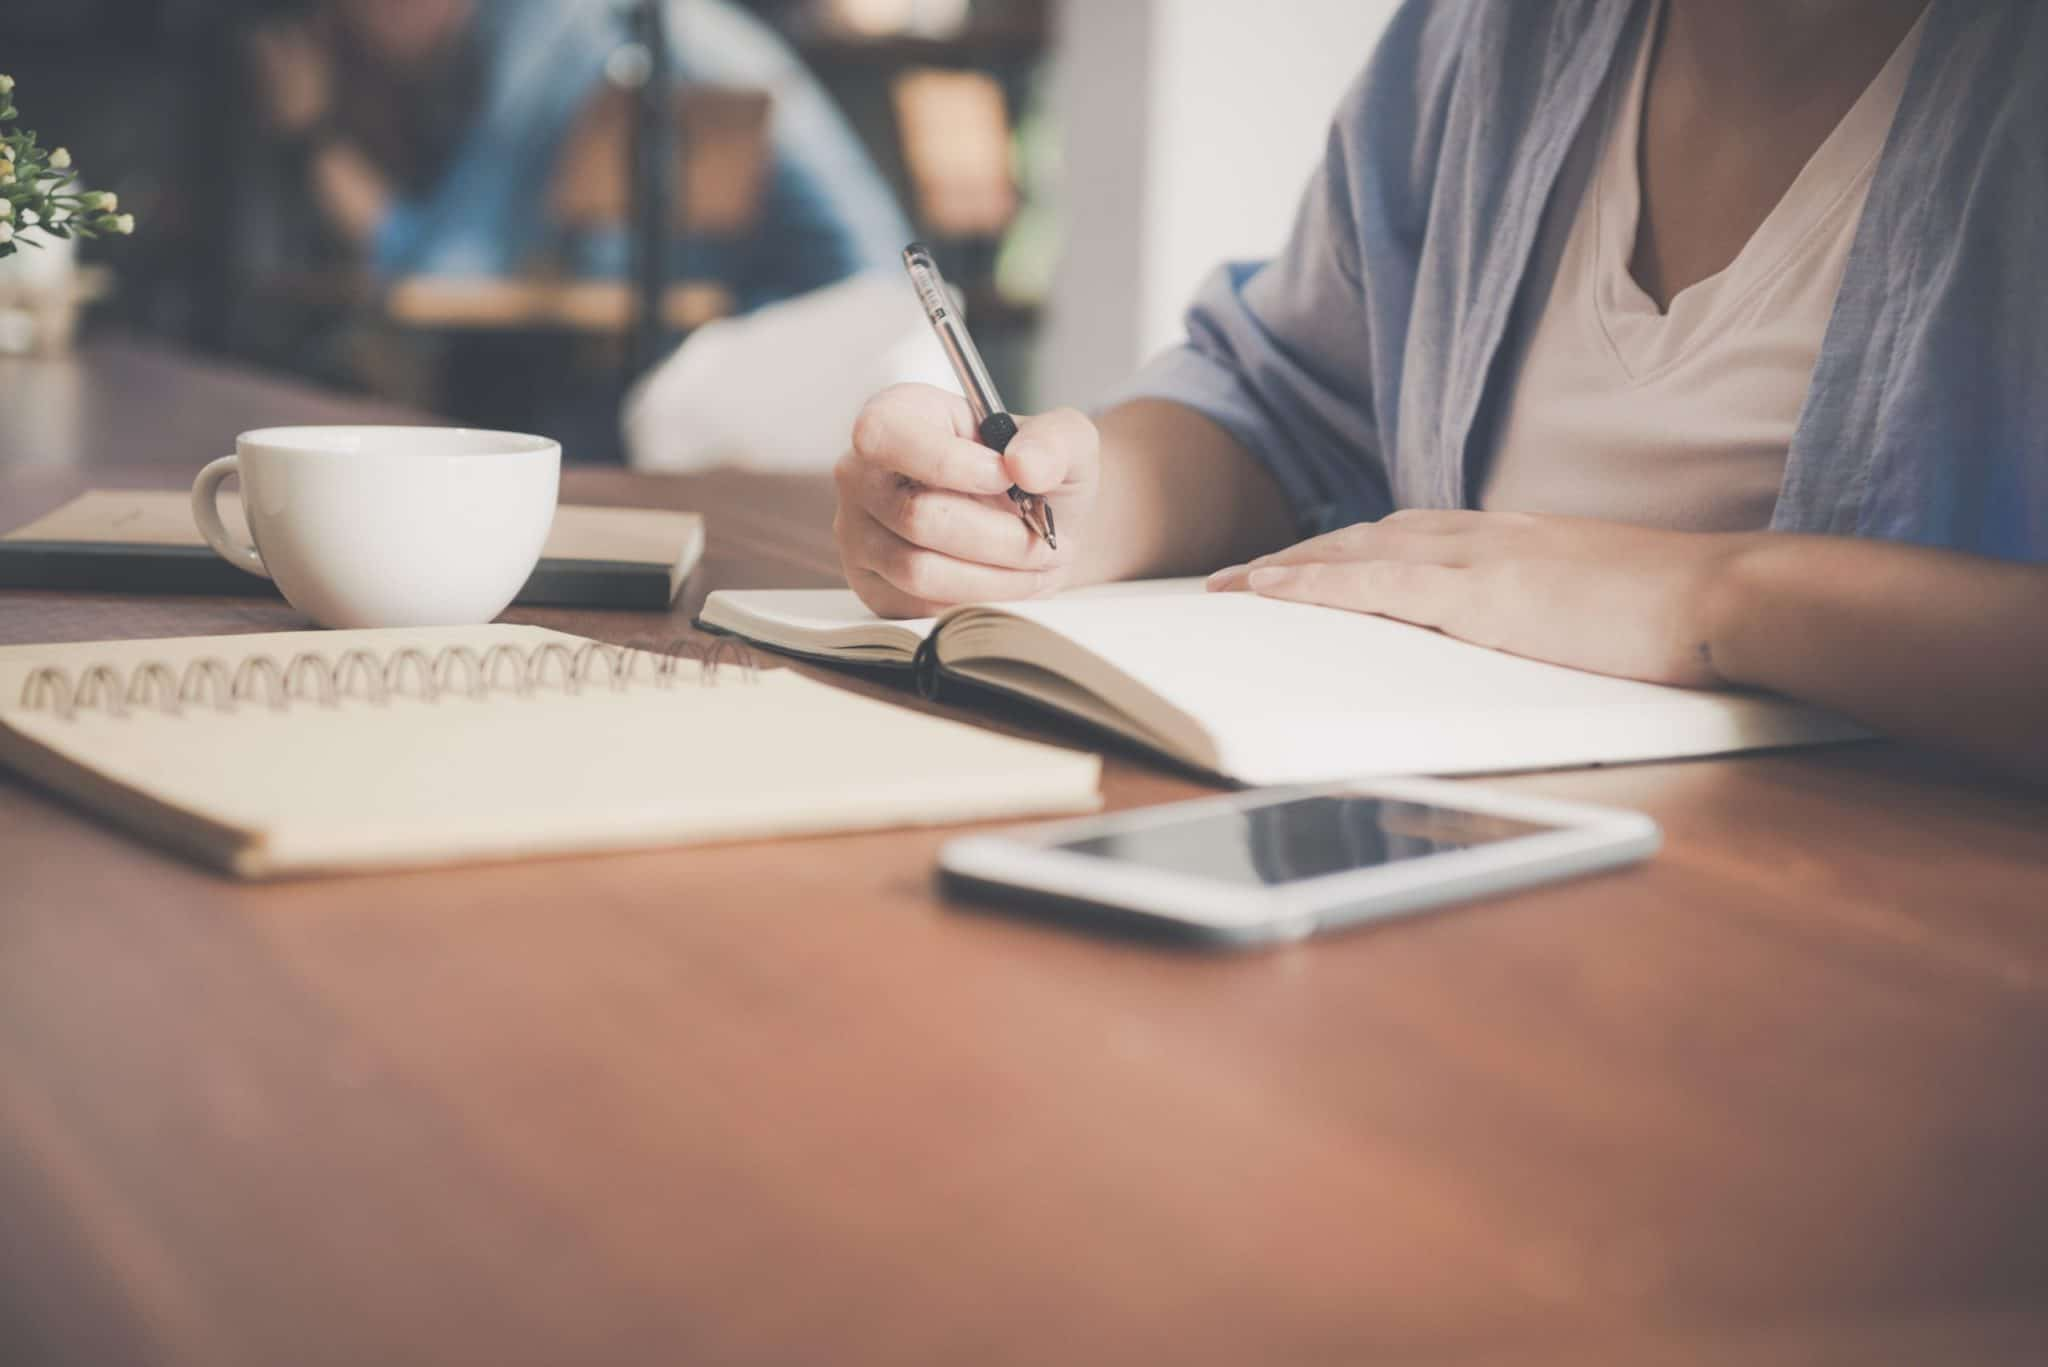 woman writing on a notebook beside teacup and tablet 733856 scaled